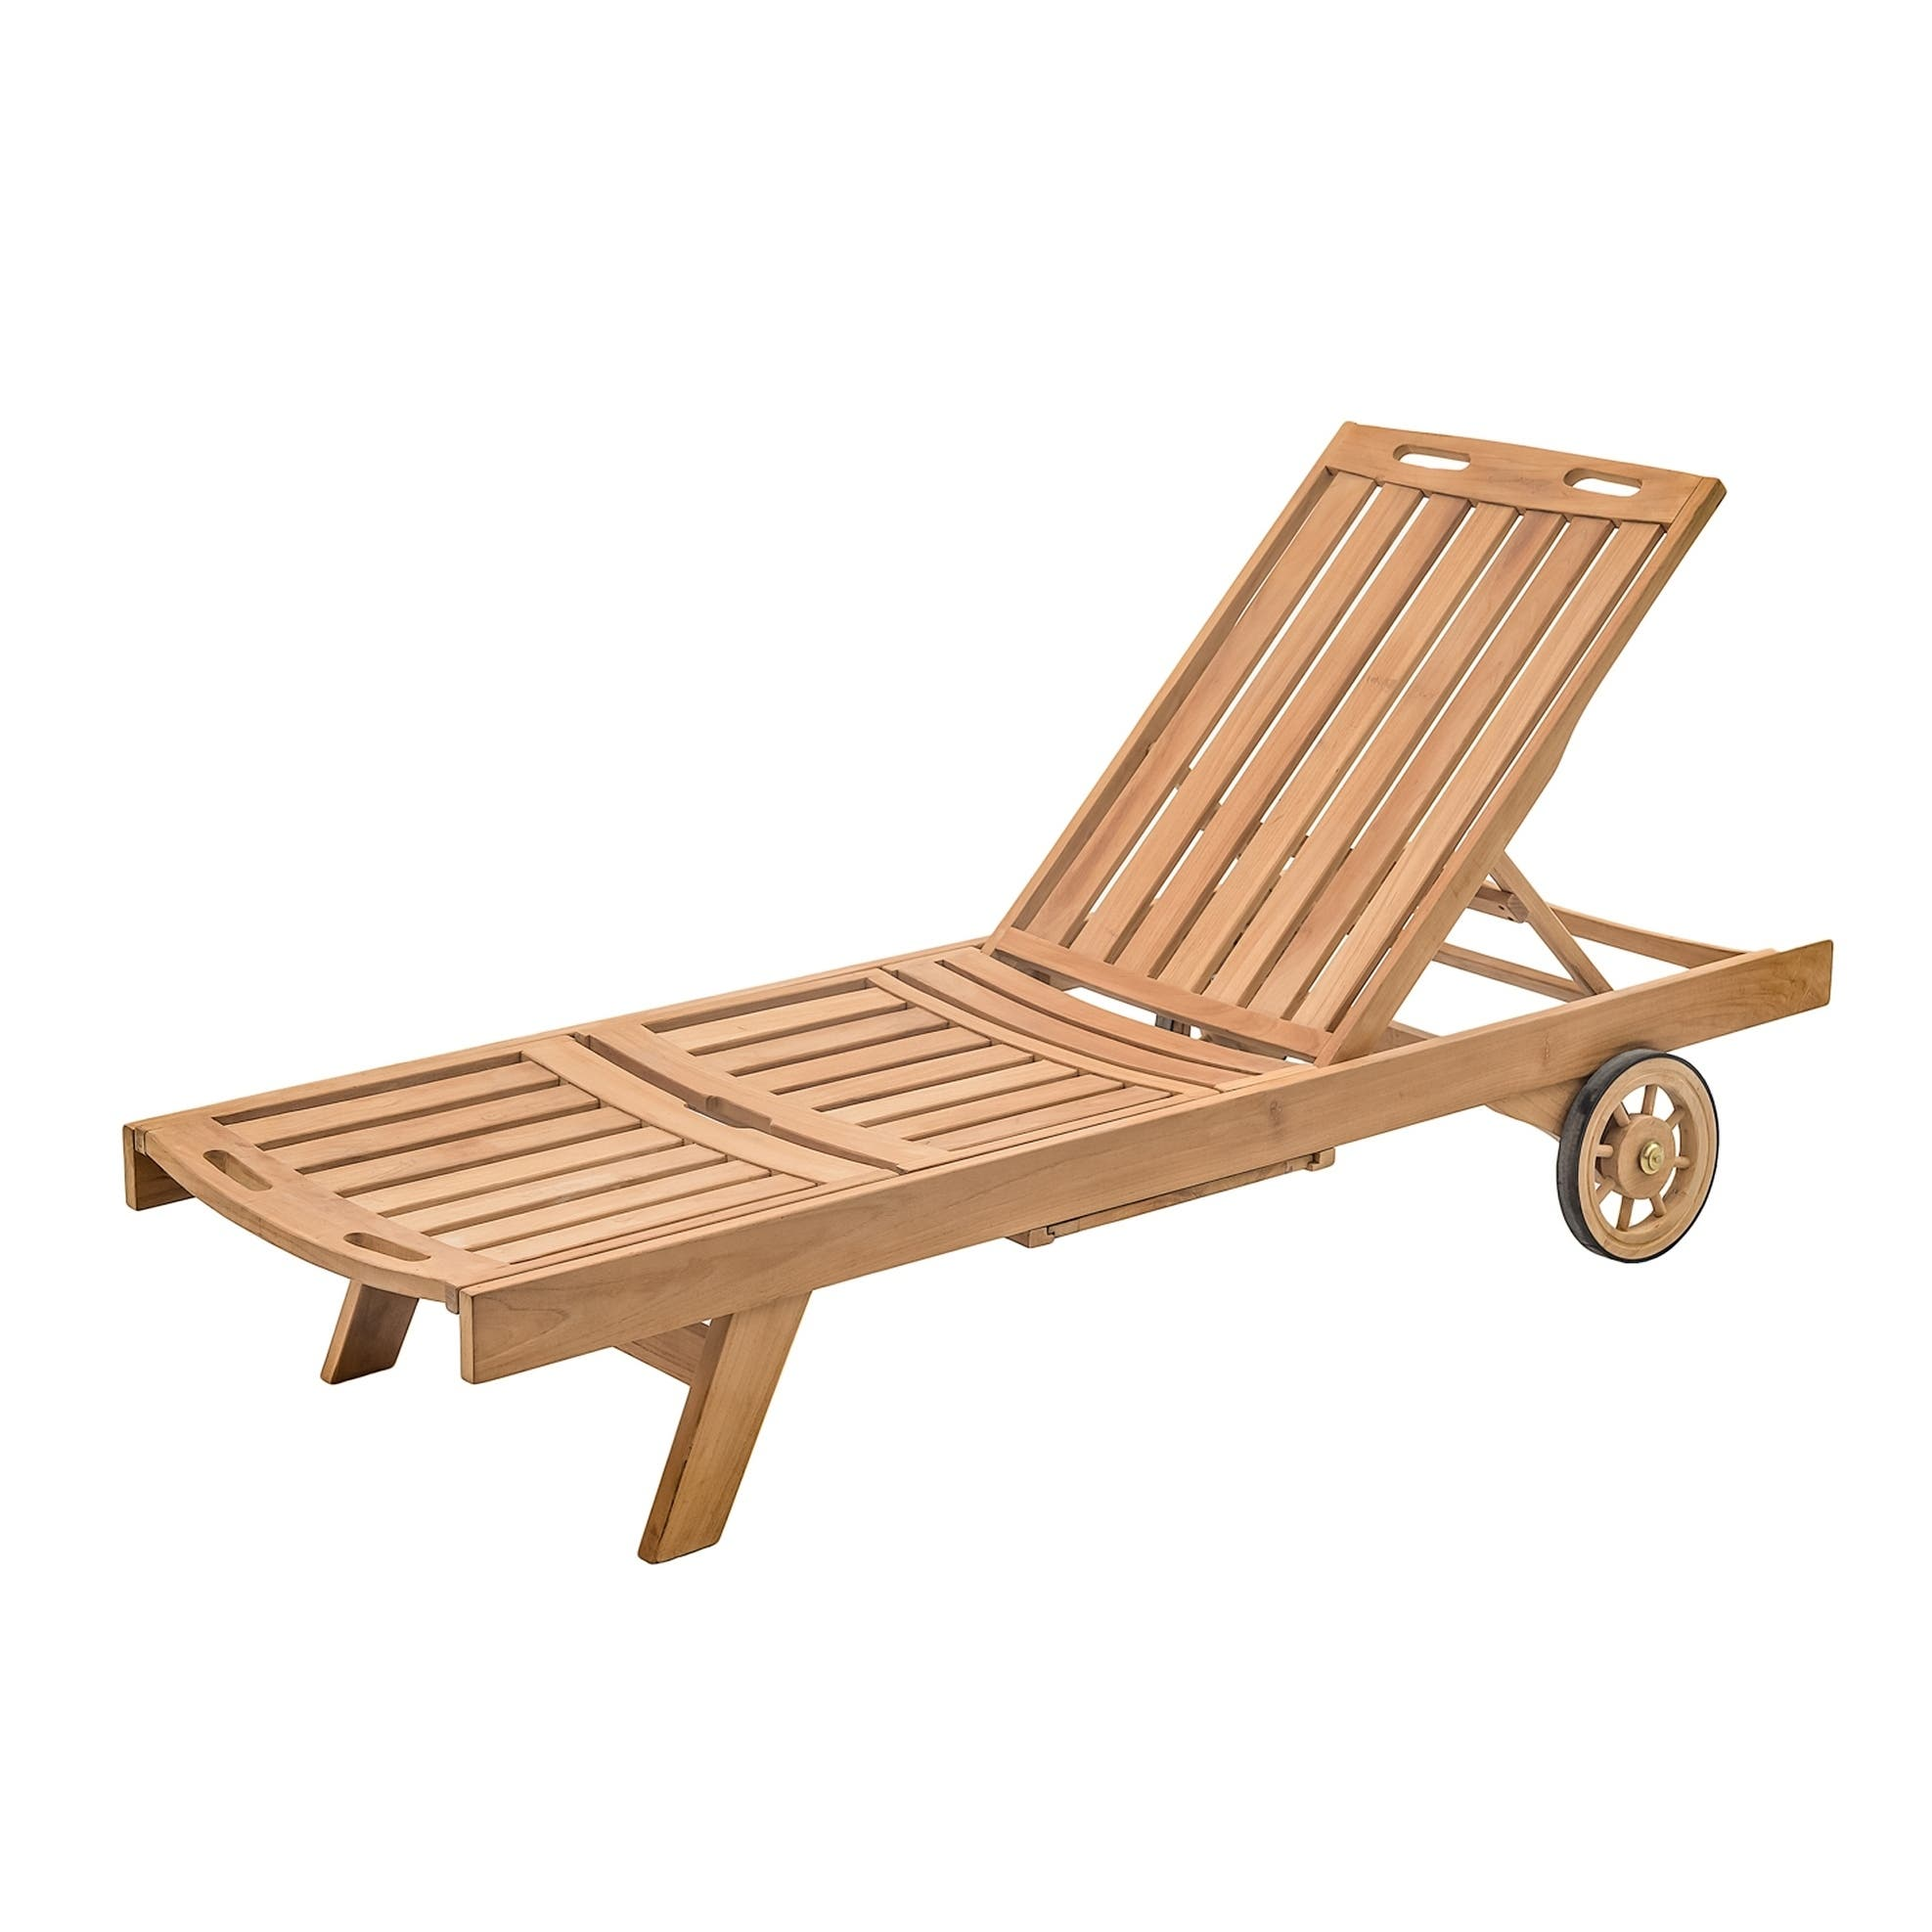 Outdoor chaise lounges for less for 3 in 1 beach chaise lounge